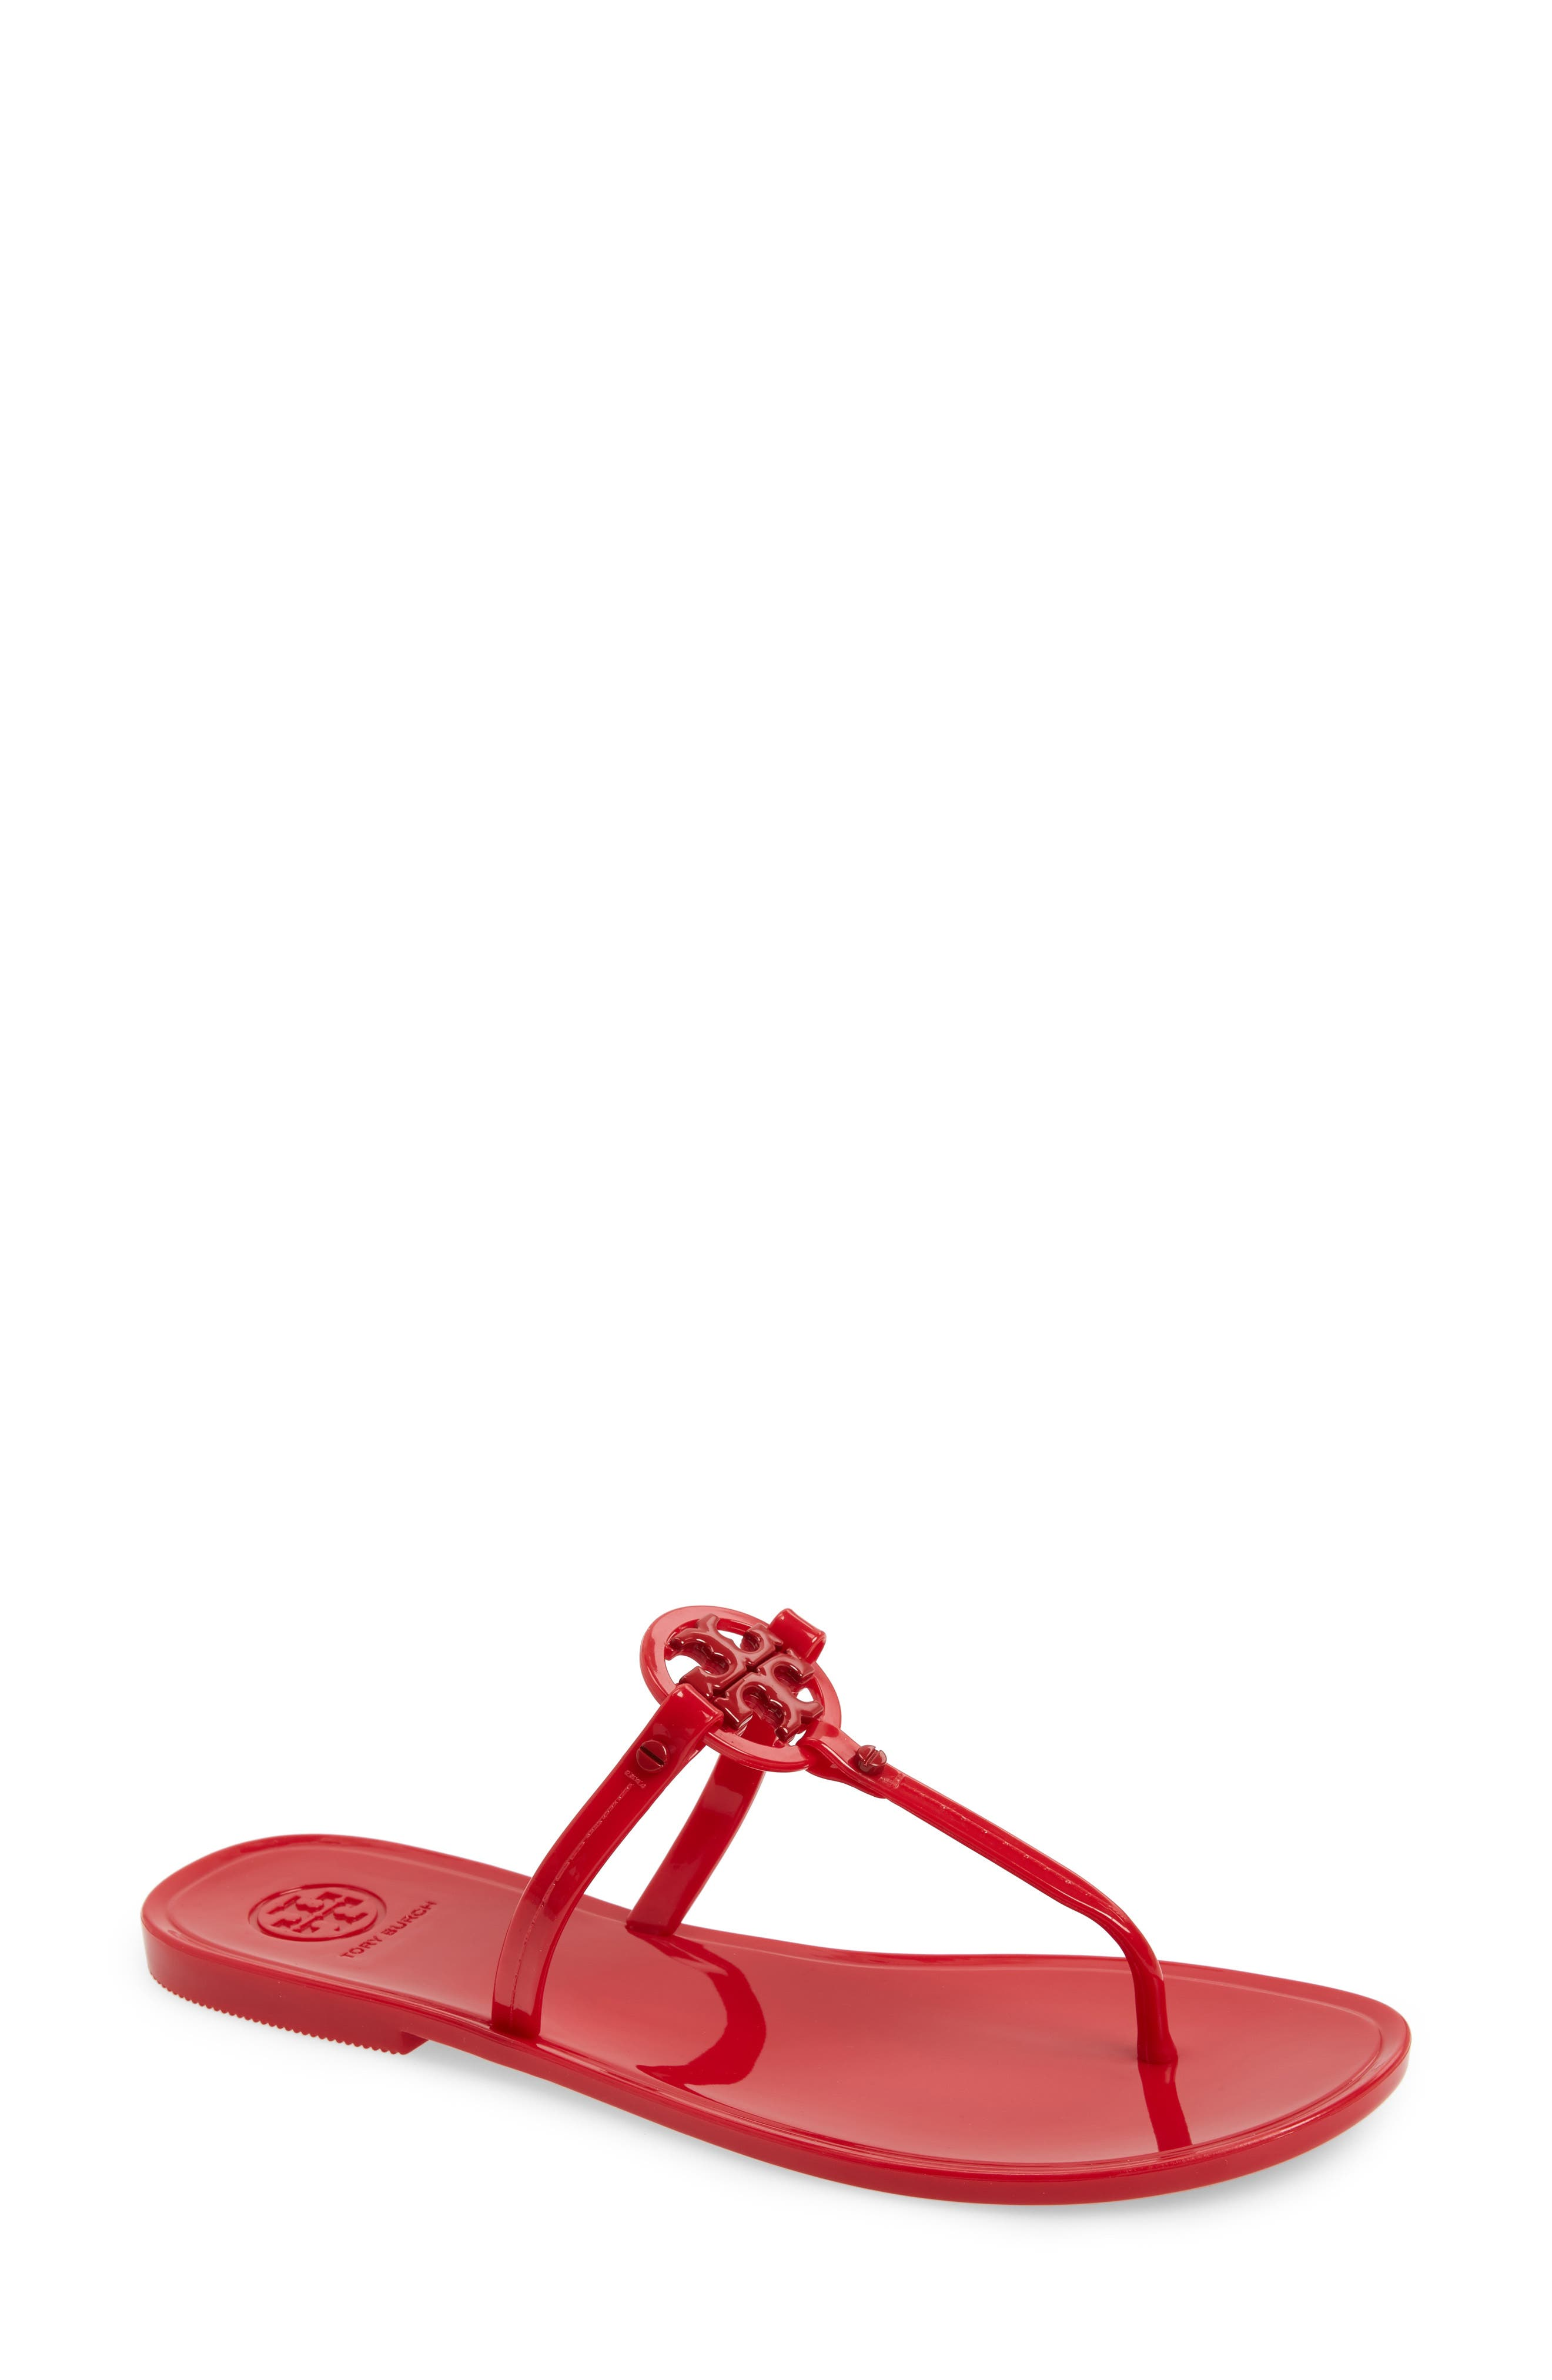 TORY BURCH 'Mini Miller' Flat Sandal, Main, color, RED